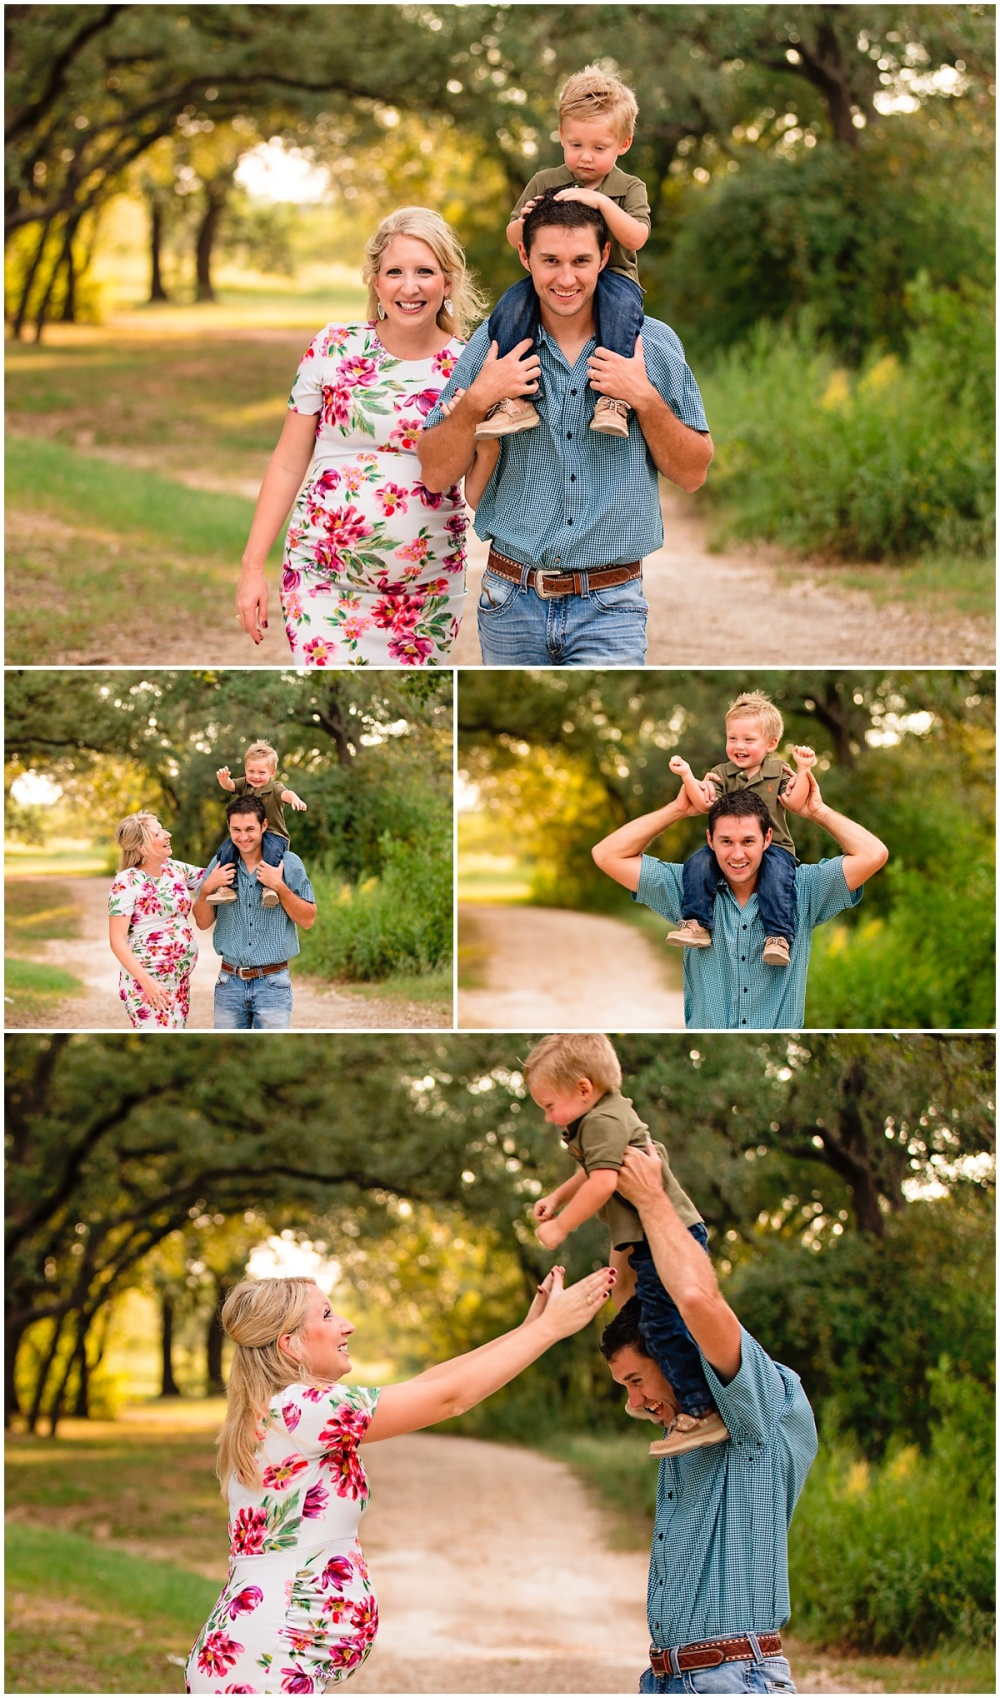 Family-Children-Maternity-Portraits-San-Antonio-Hill-Country-Texas-Carly-Barton-Photography_0006.jpg